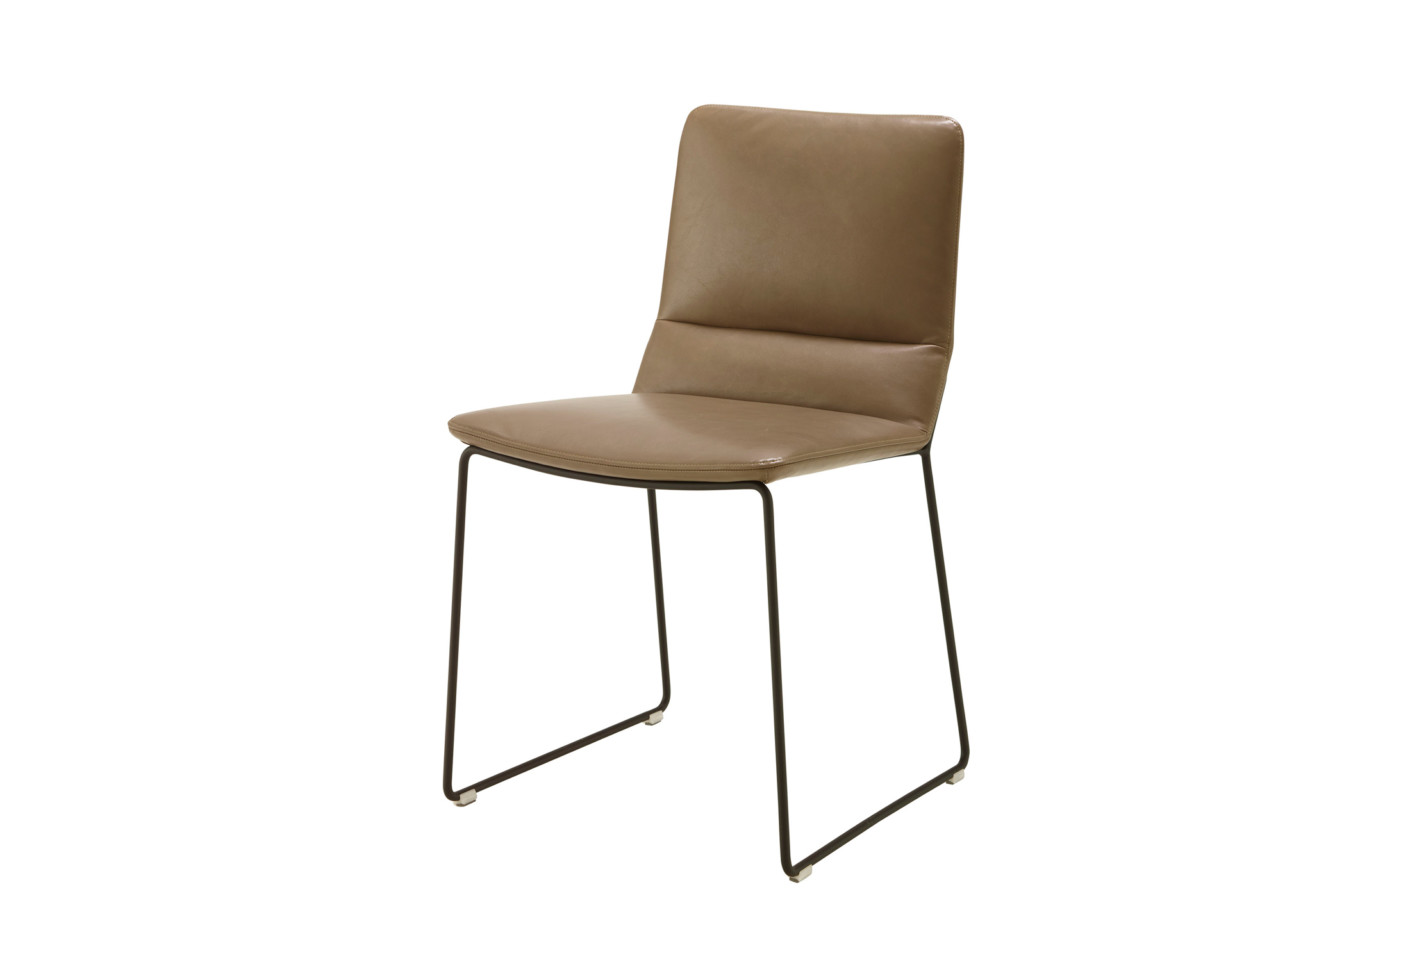 Bendchair with skids by ligne roset stylepark for Home articles furniture